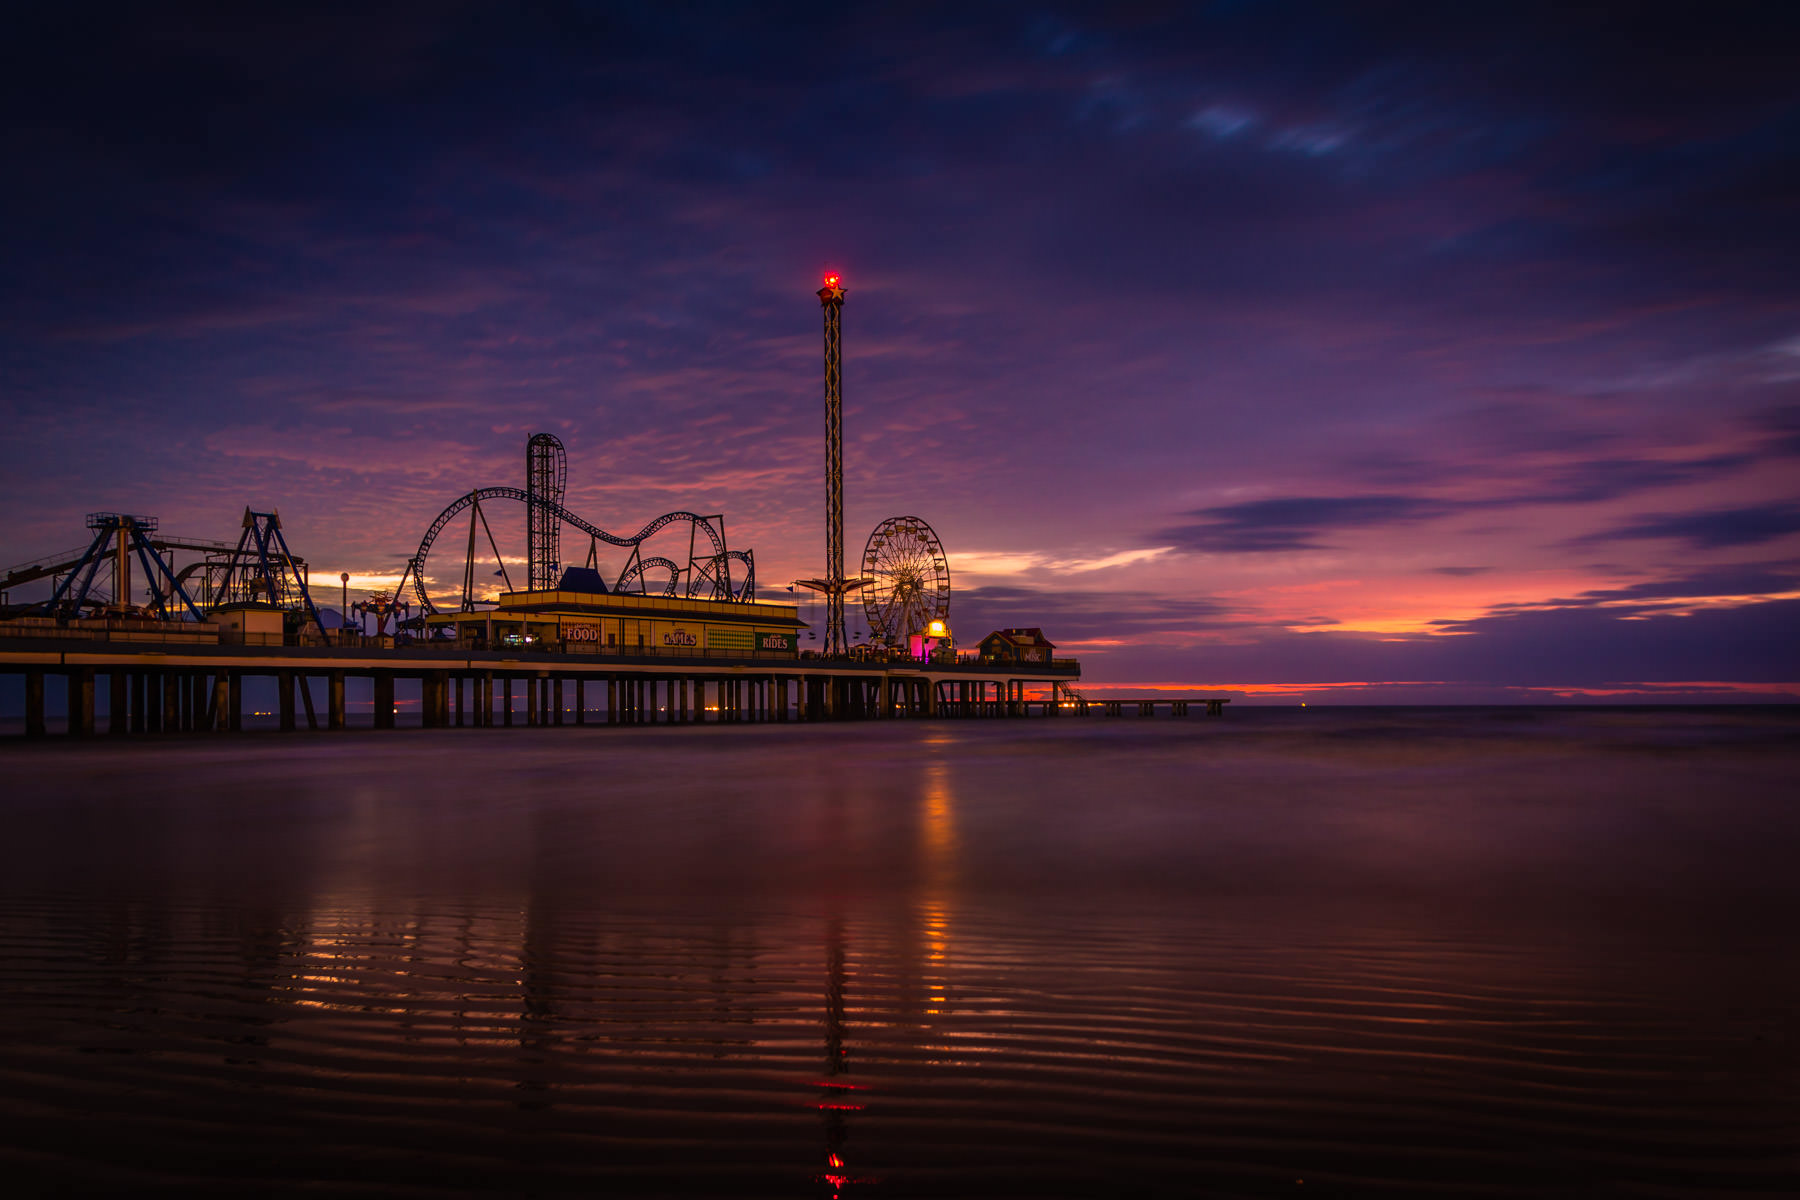 A fifteen-second pre-dawn exposure of Galveston, Texas' Pleasure Pier.